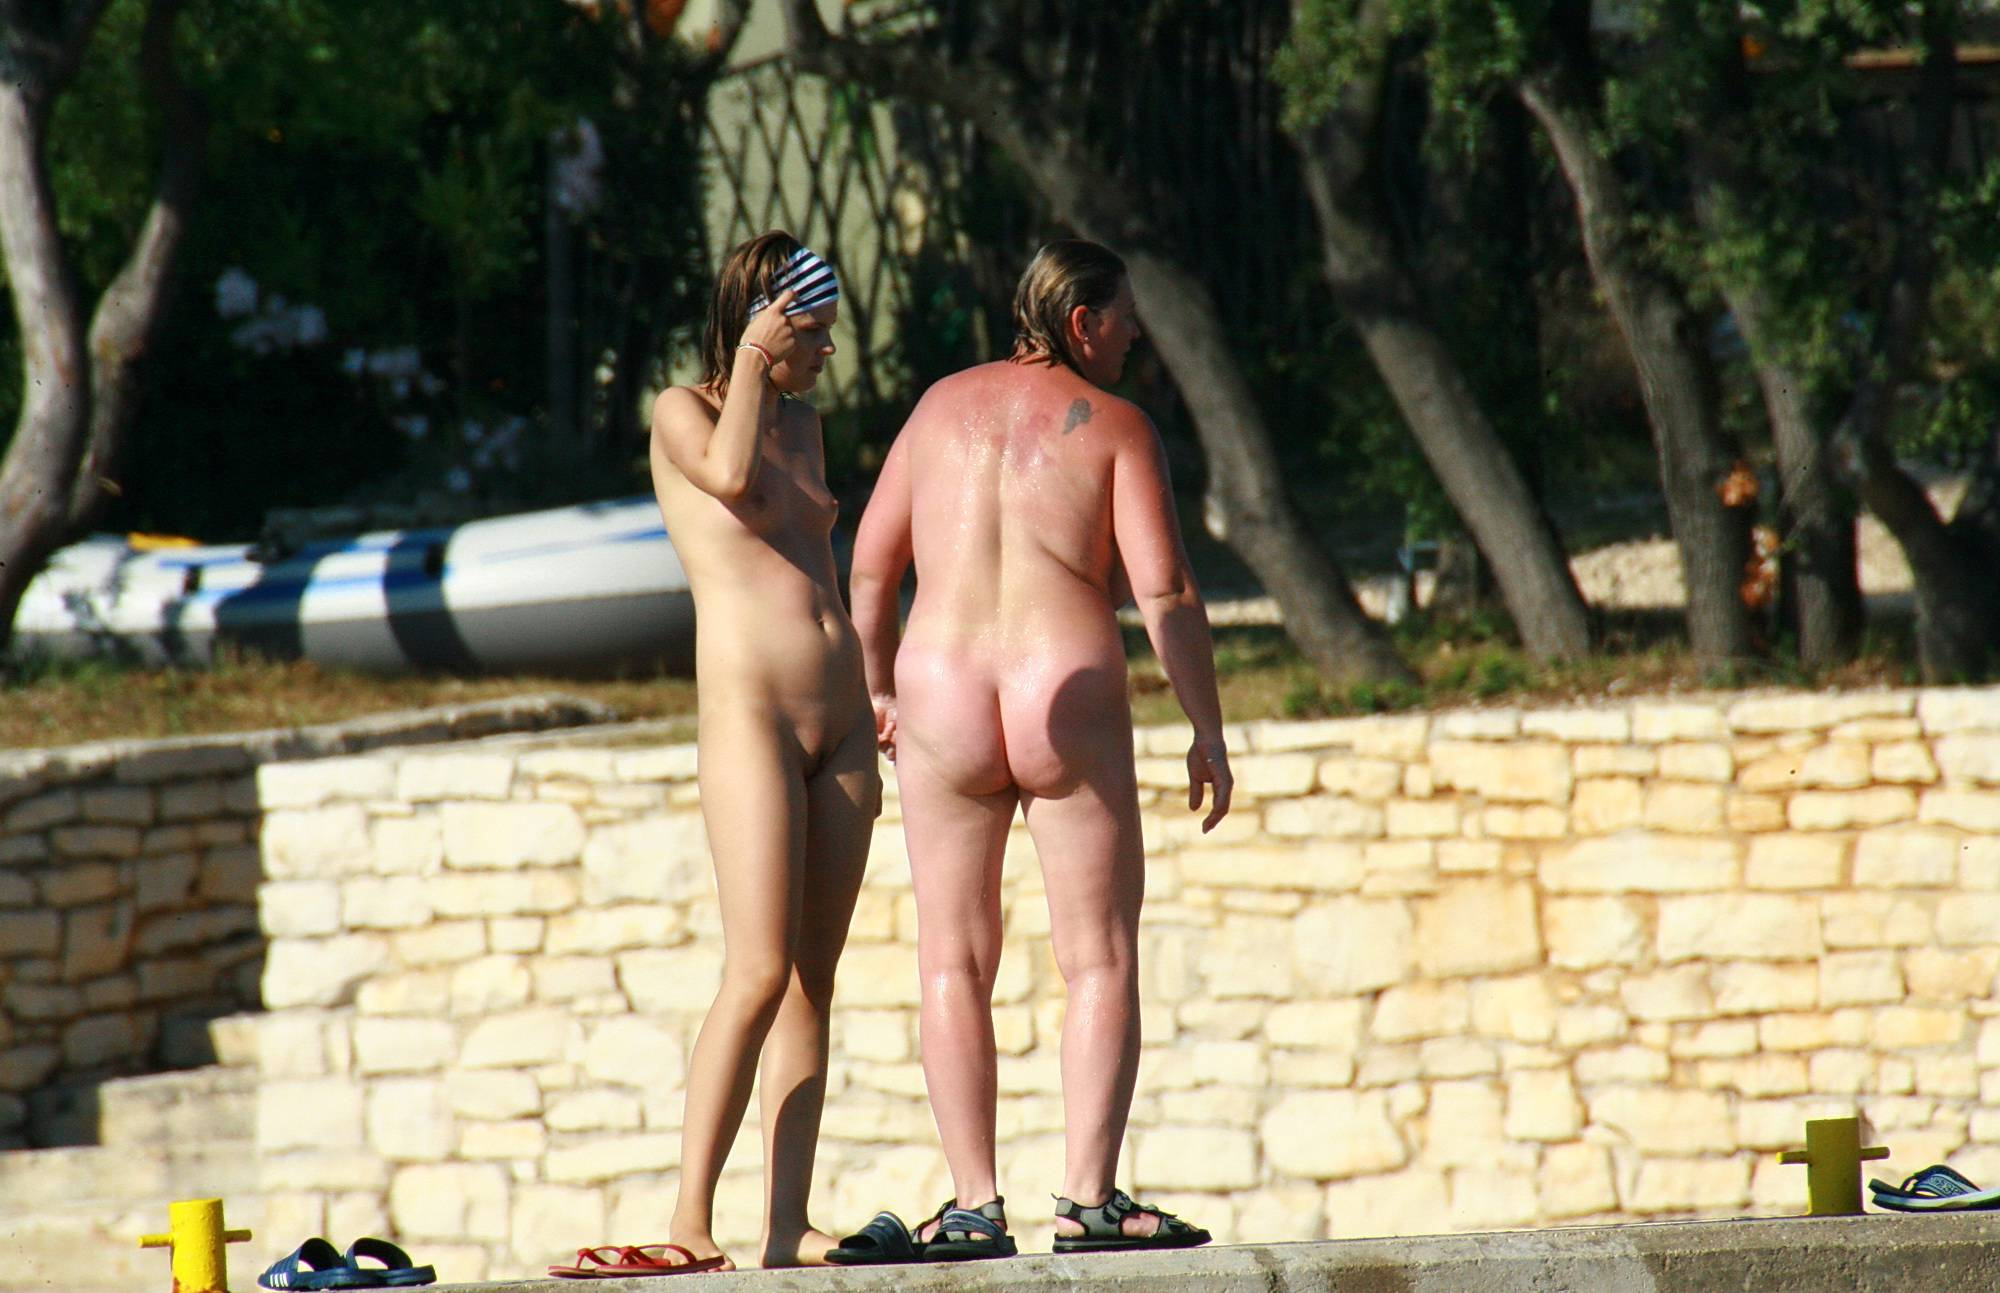 Nudist Pictures Roasting Day Outdoors - 2